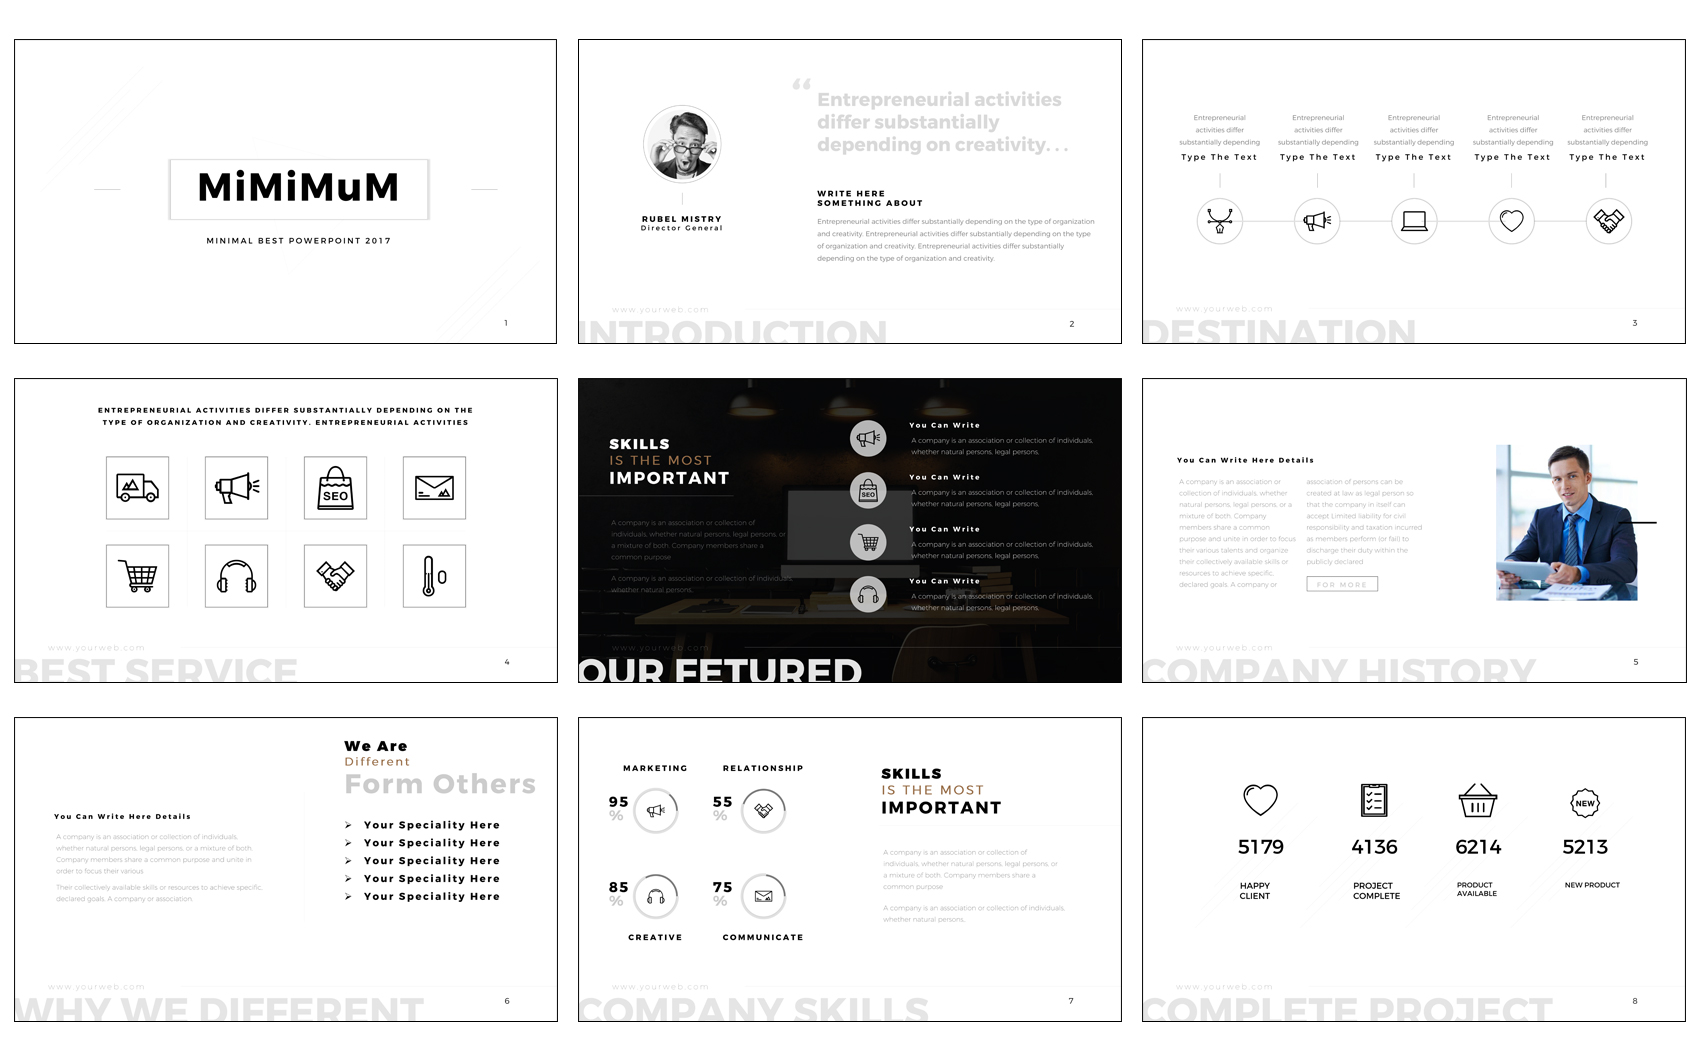 MiniMuM PowerPoint Template PowerPoint Template Big Screenshot